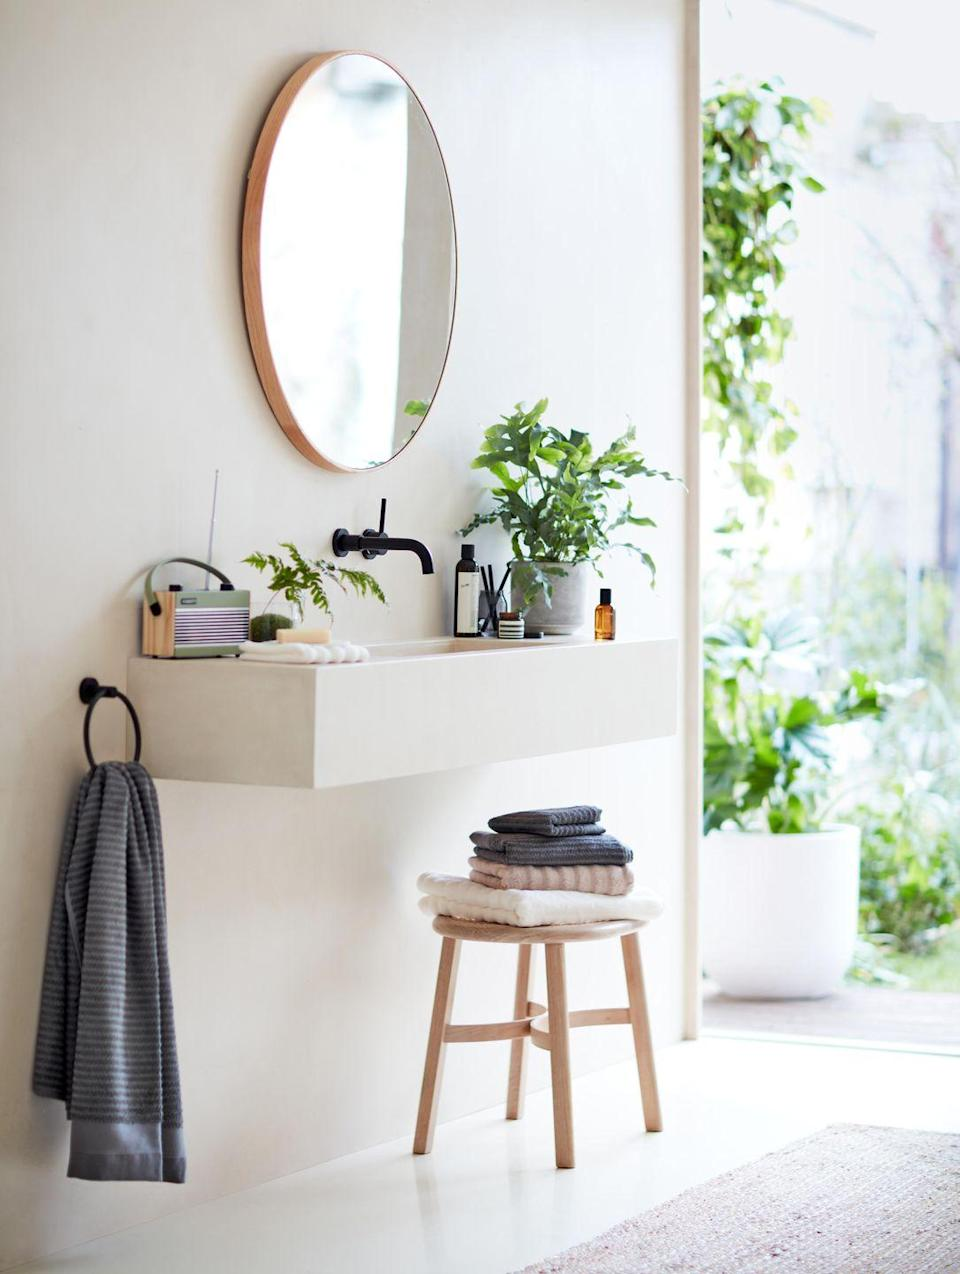 "<p>Inspired by Scandi style, you'll find gorgeous bathroom mirrors, wooden stools, plush towels, air-purifying <a href=""https://www.countryliving.com/uk/homes-interiors/interiors/a32104578/best-indoor-hanging-plants/"" rel=""nofollow noopener"" target=""_blank"" data-ylk=""slk:plants"" class=""link rapid-noclick-resp"">plants</a> and lovely soaps, too. </p><p><a class=""link rapid-noclick-resp"" href=""https://go.redirectingat.com?id=127X1599956&url=https%3A%2F%2Fwww.johnlewis.com%2Fbrowse%2Fhome-garden%2Fnew-in-home%2F_%2FN-7opk&sref=https%3A%2F%2Fwww.countryliving.com%2Fuk%2Fhomes-interiors%2Finteriors%2Fg35316655%2Fjohn-lewis-homeware-spring-summer%2F"" rel=""nofollow noopener"" target=""_blank"" data-ylk=""slk:SHOP NOW"">SHOP NOW</a></p>"